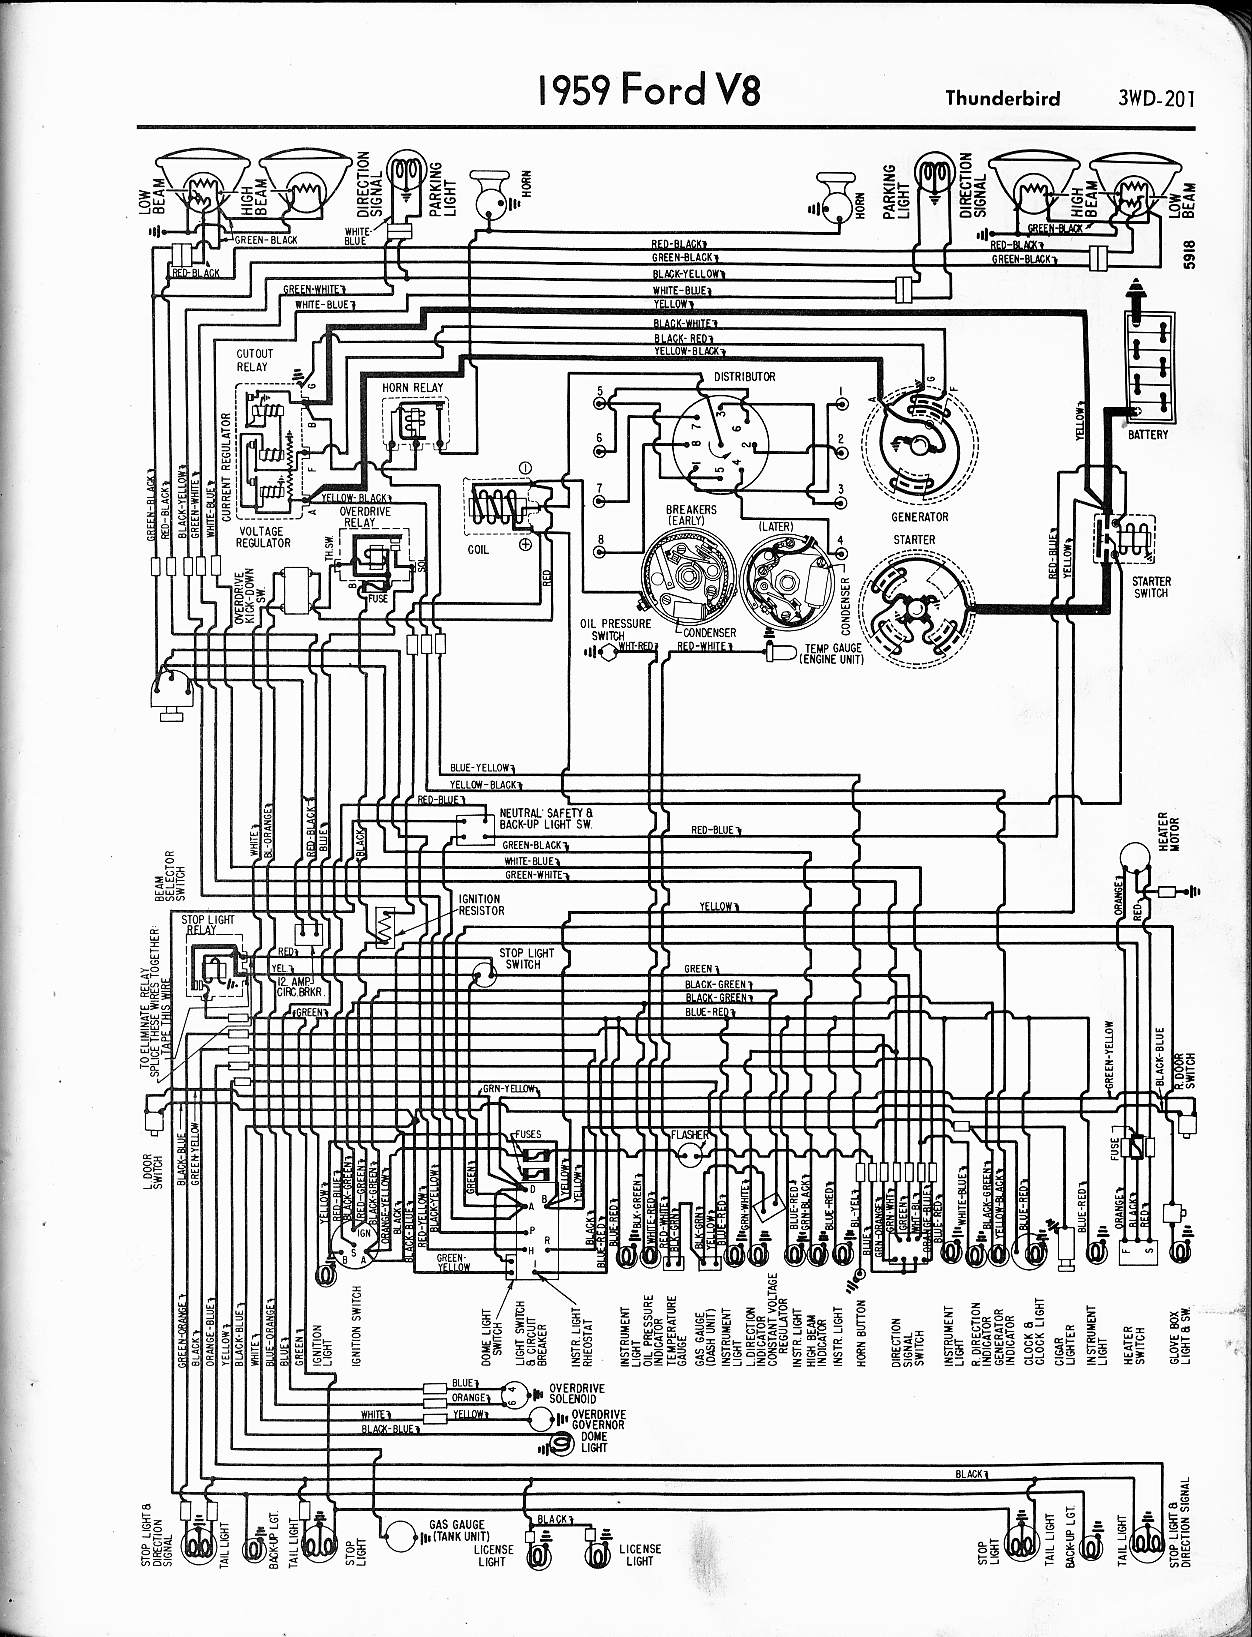 Ford Car Wiring Diagrams Diagram Schemes 89 F 150 Window Motor 57 65 Truck